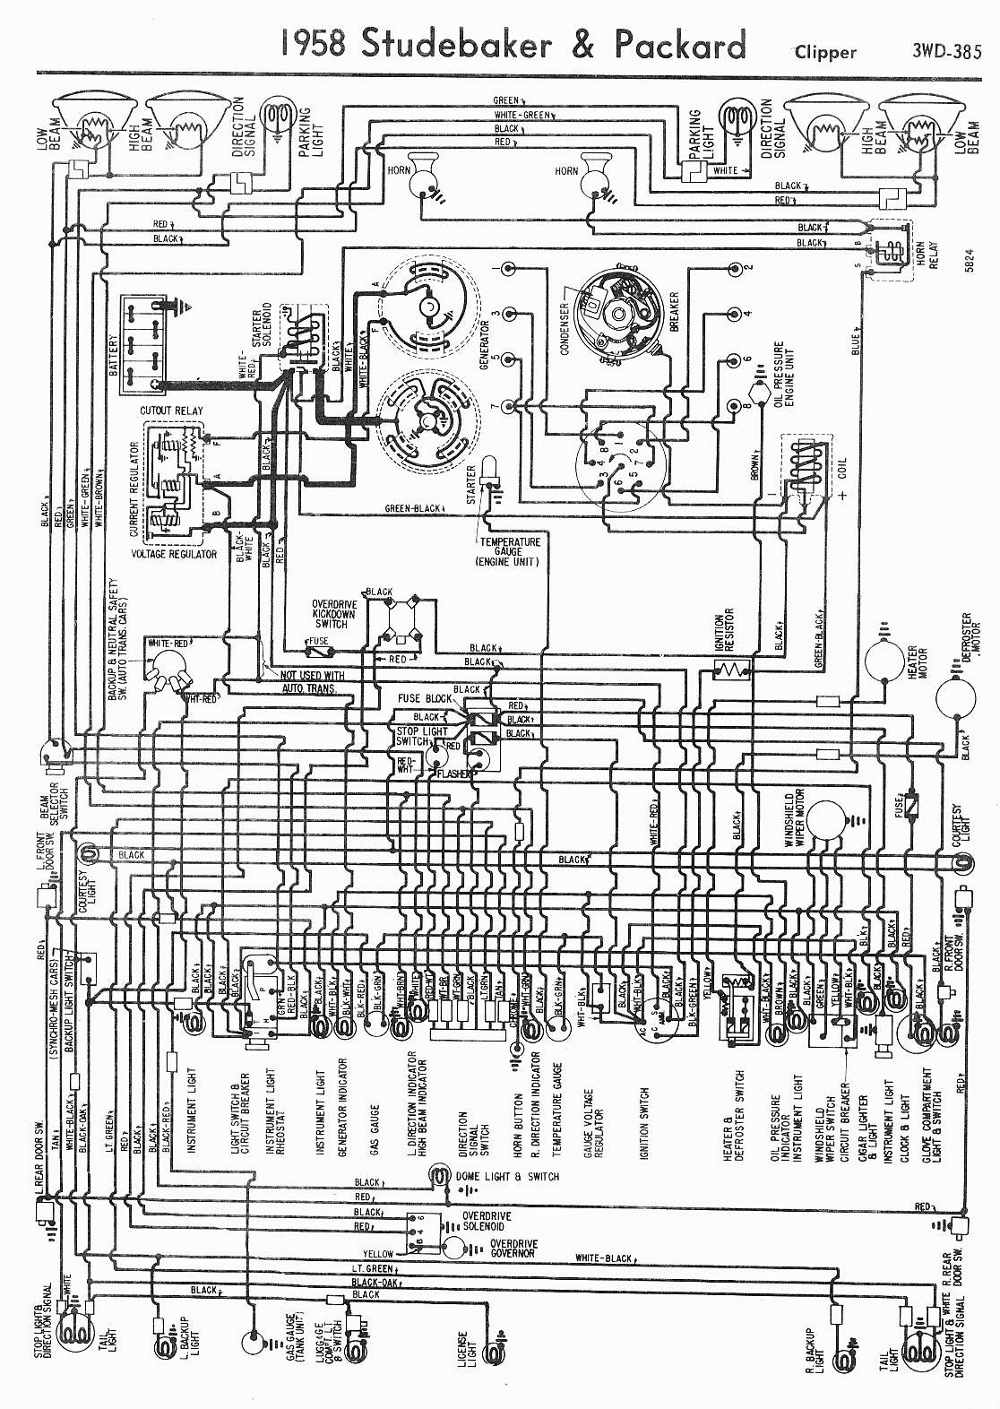 1949 Studebaker Wiring Harness - Wiring Diagrams Long on turn signal system, turn signal troubleshooting, turn signal solenoid, ford turn signal switch diagram, turn signal cable, 2004 acura tl fuse box diagram, turn signal socket diagram, circuit diagram, turn signal lights, turn signal repair, gm turn signal switch diagram, turn signal wire, turn signal sensor, universal turn signal switch diagram, turn signal plug, turn signal flasher, turn signal relay, turn signal regulator, turn signal fuse, turn signal headlight,